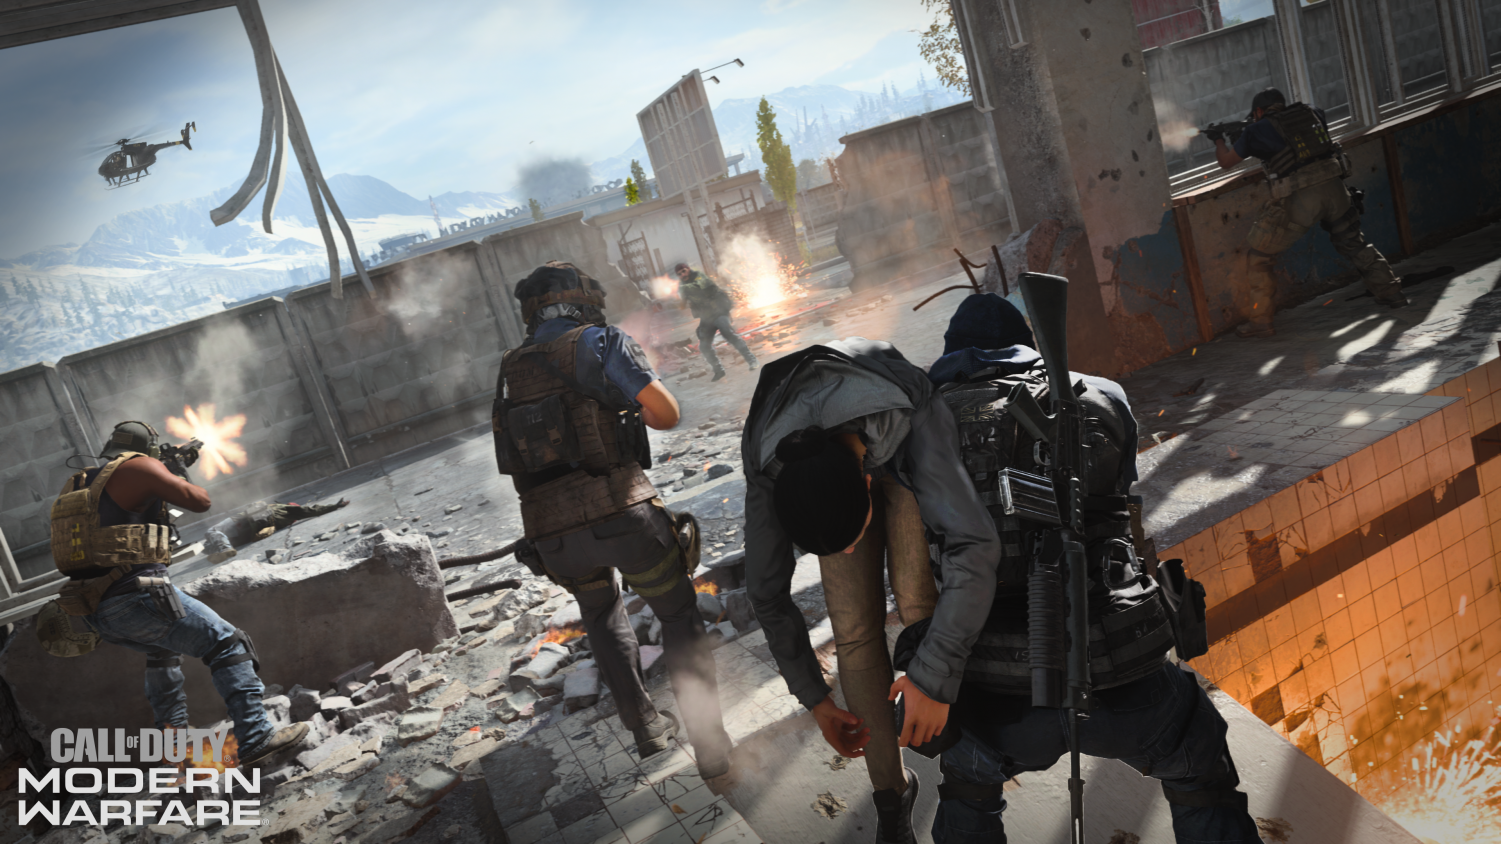 The Special Ops mode features cooperative online gameplay.